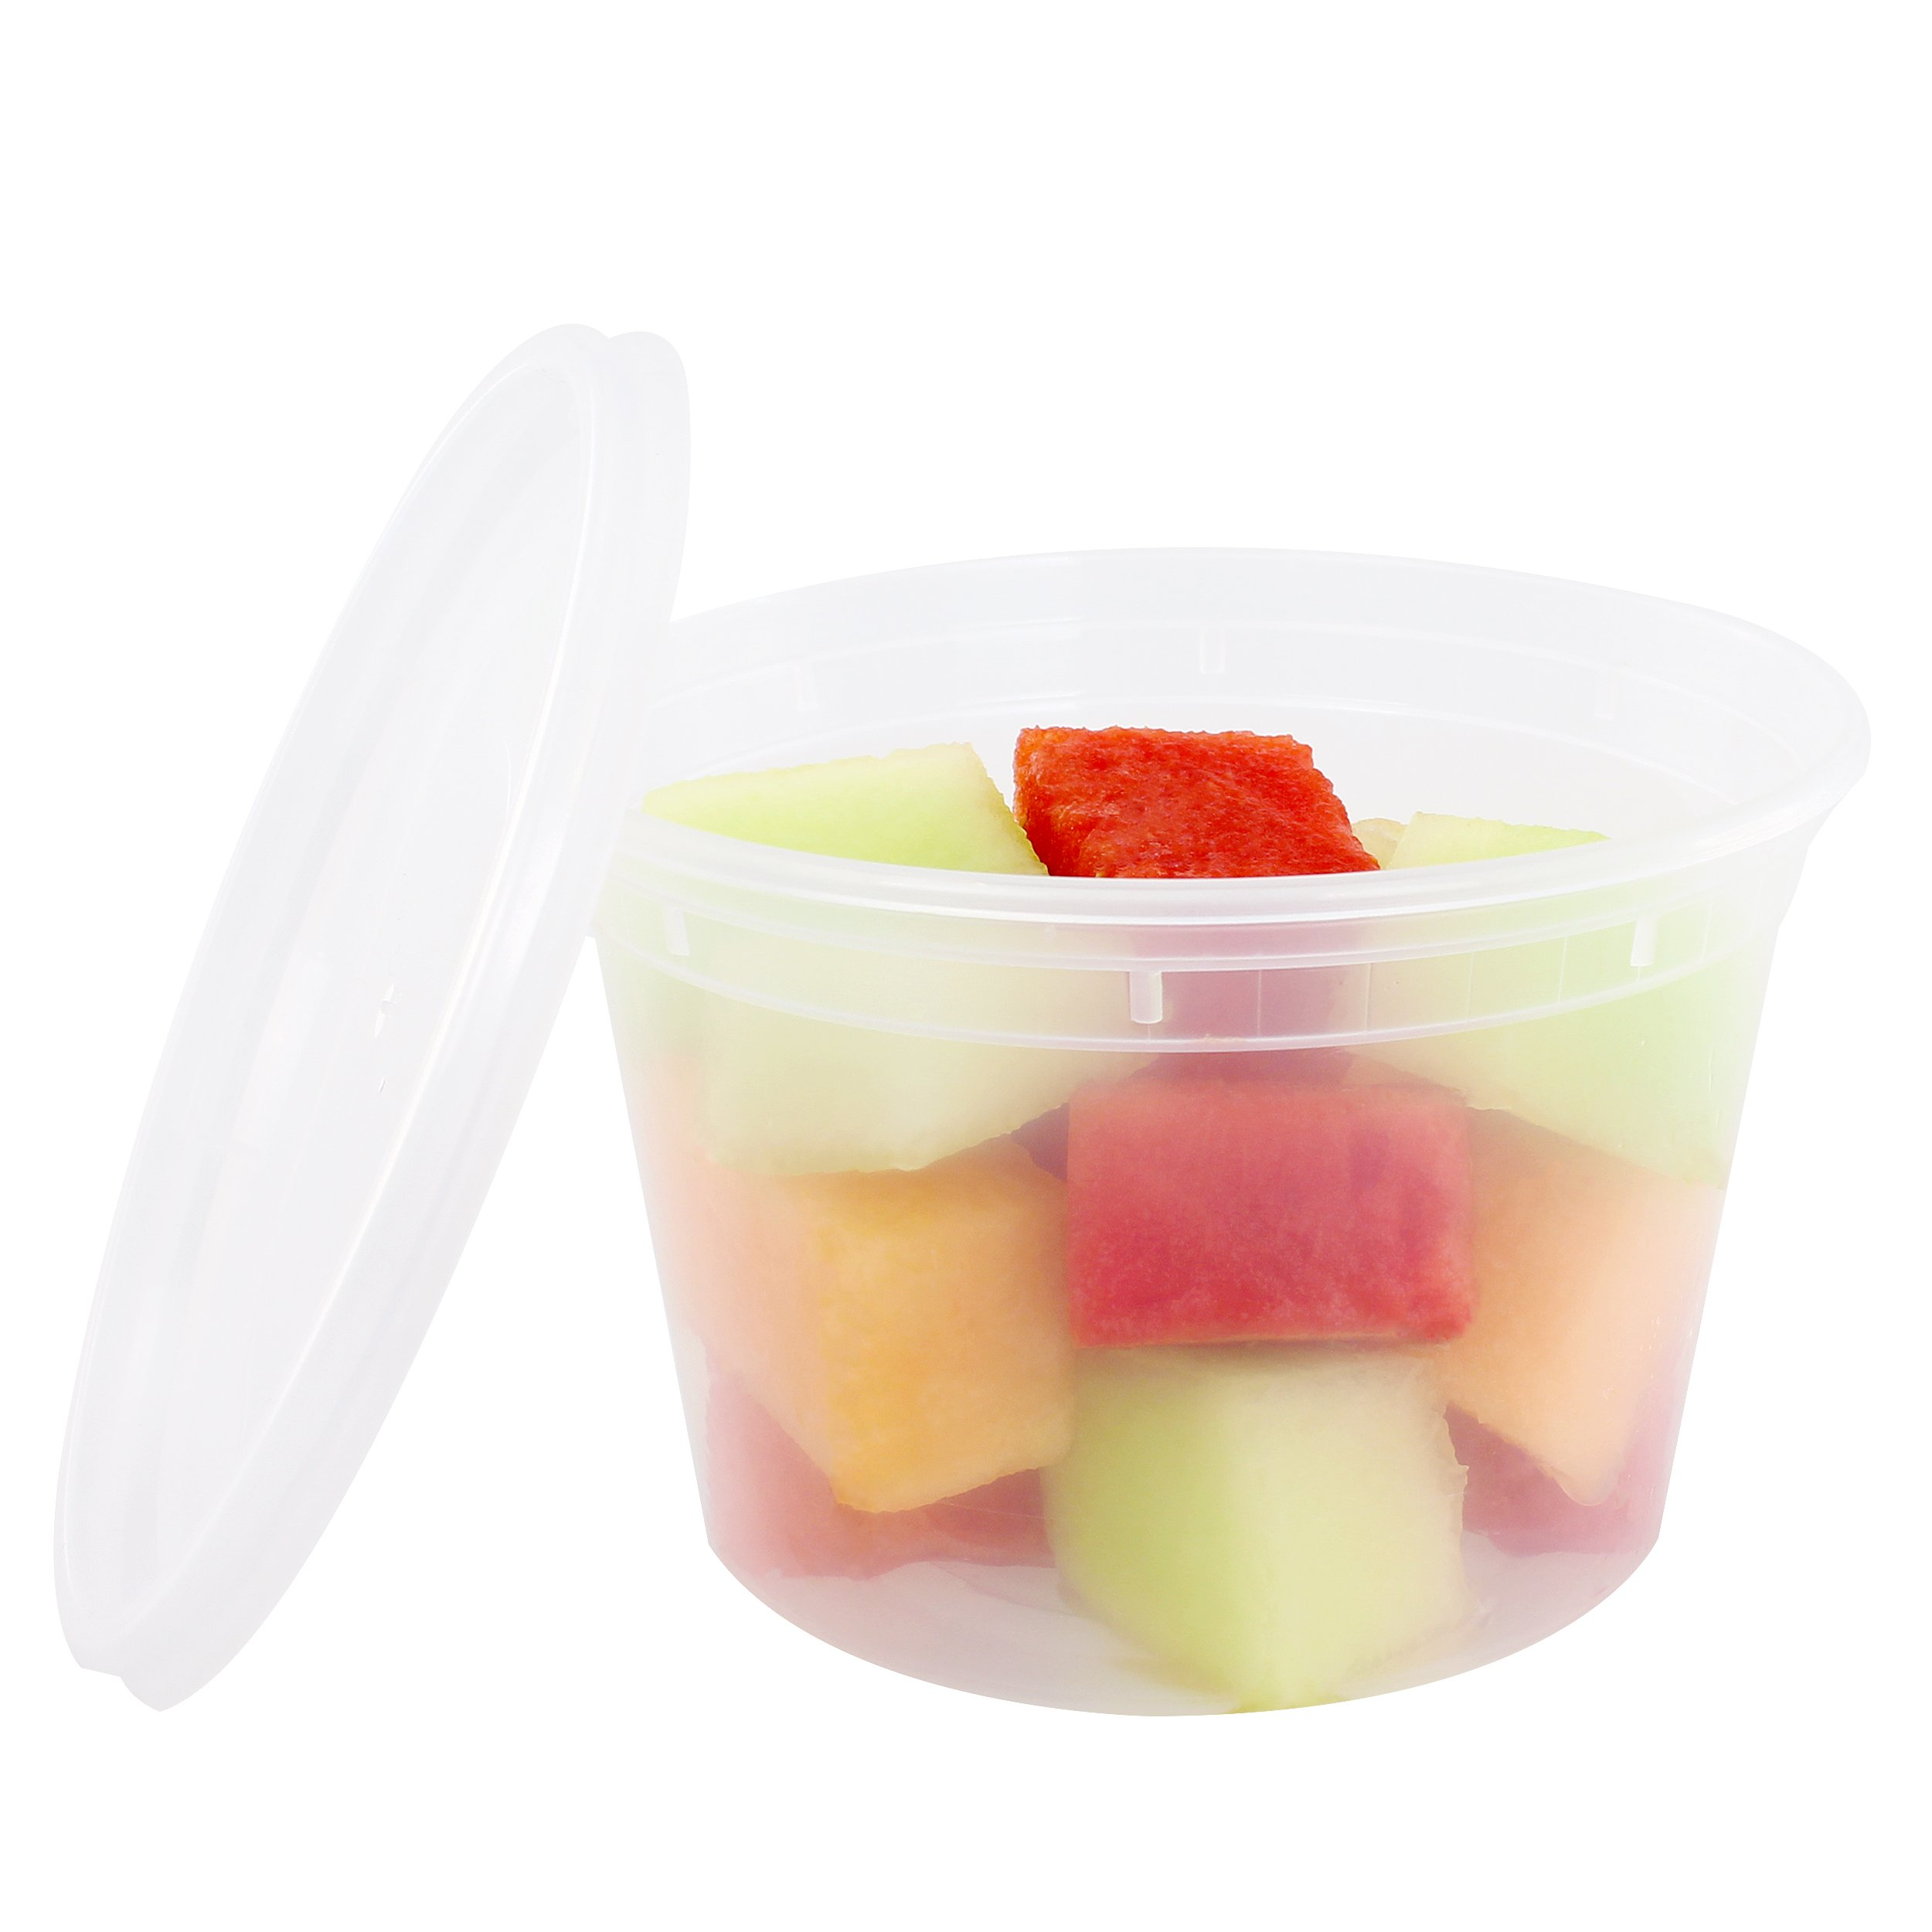 Freshware Food Storage Containers with Lids [36 Pack, 16oz] - Plastic Containers, Deli, Slime, Soup, Meal Prep Containers | BPA Free | Stackable | Leakproof | Microwave/Dishwasher/Freezer Safe by Freshware (Image #3)